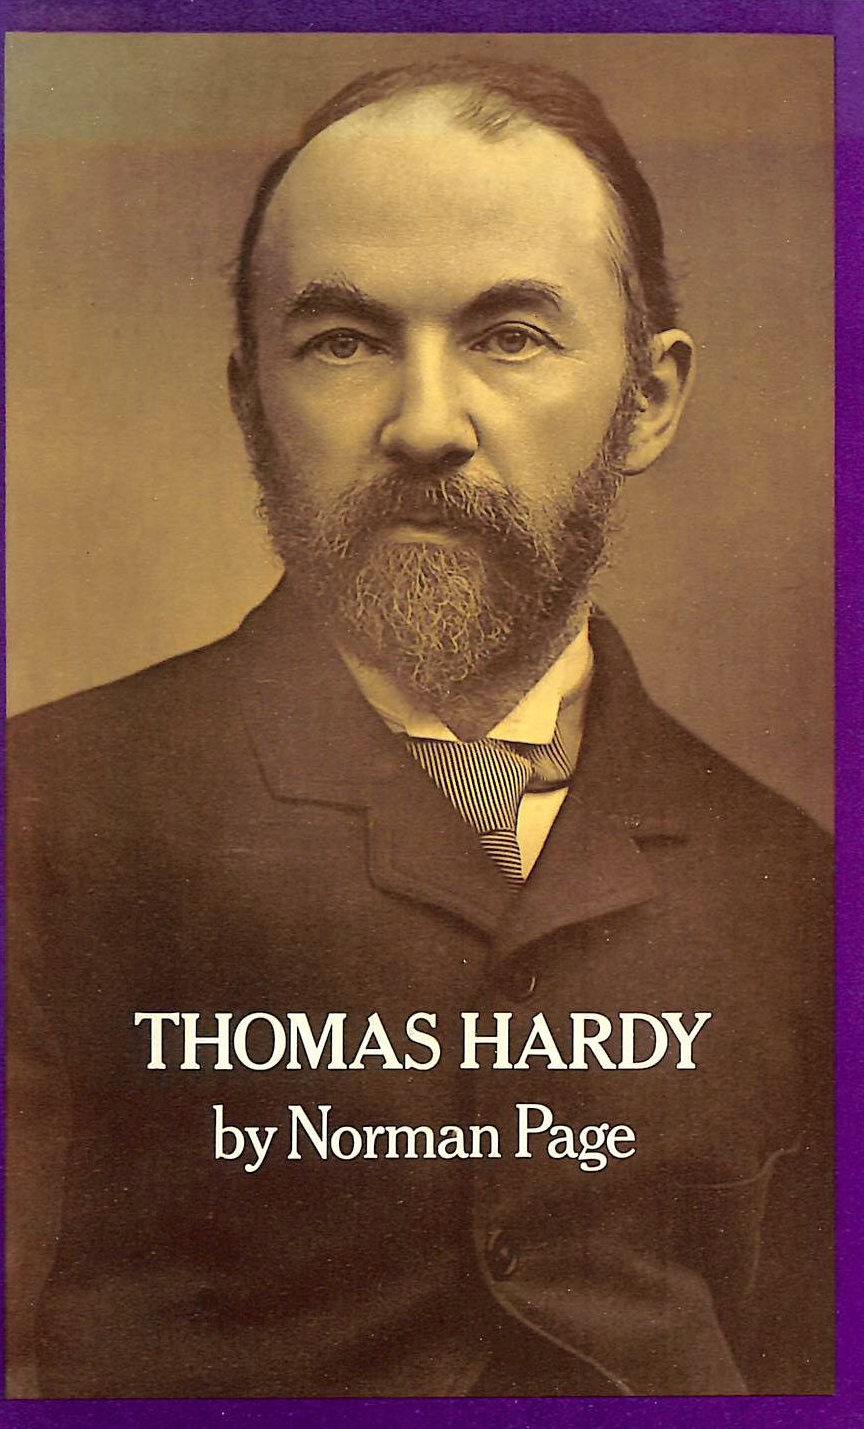 PAGE, PROFESSOR NORMAN - Thomas Hardy